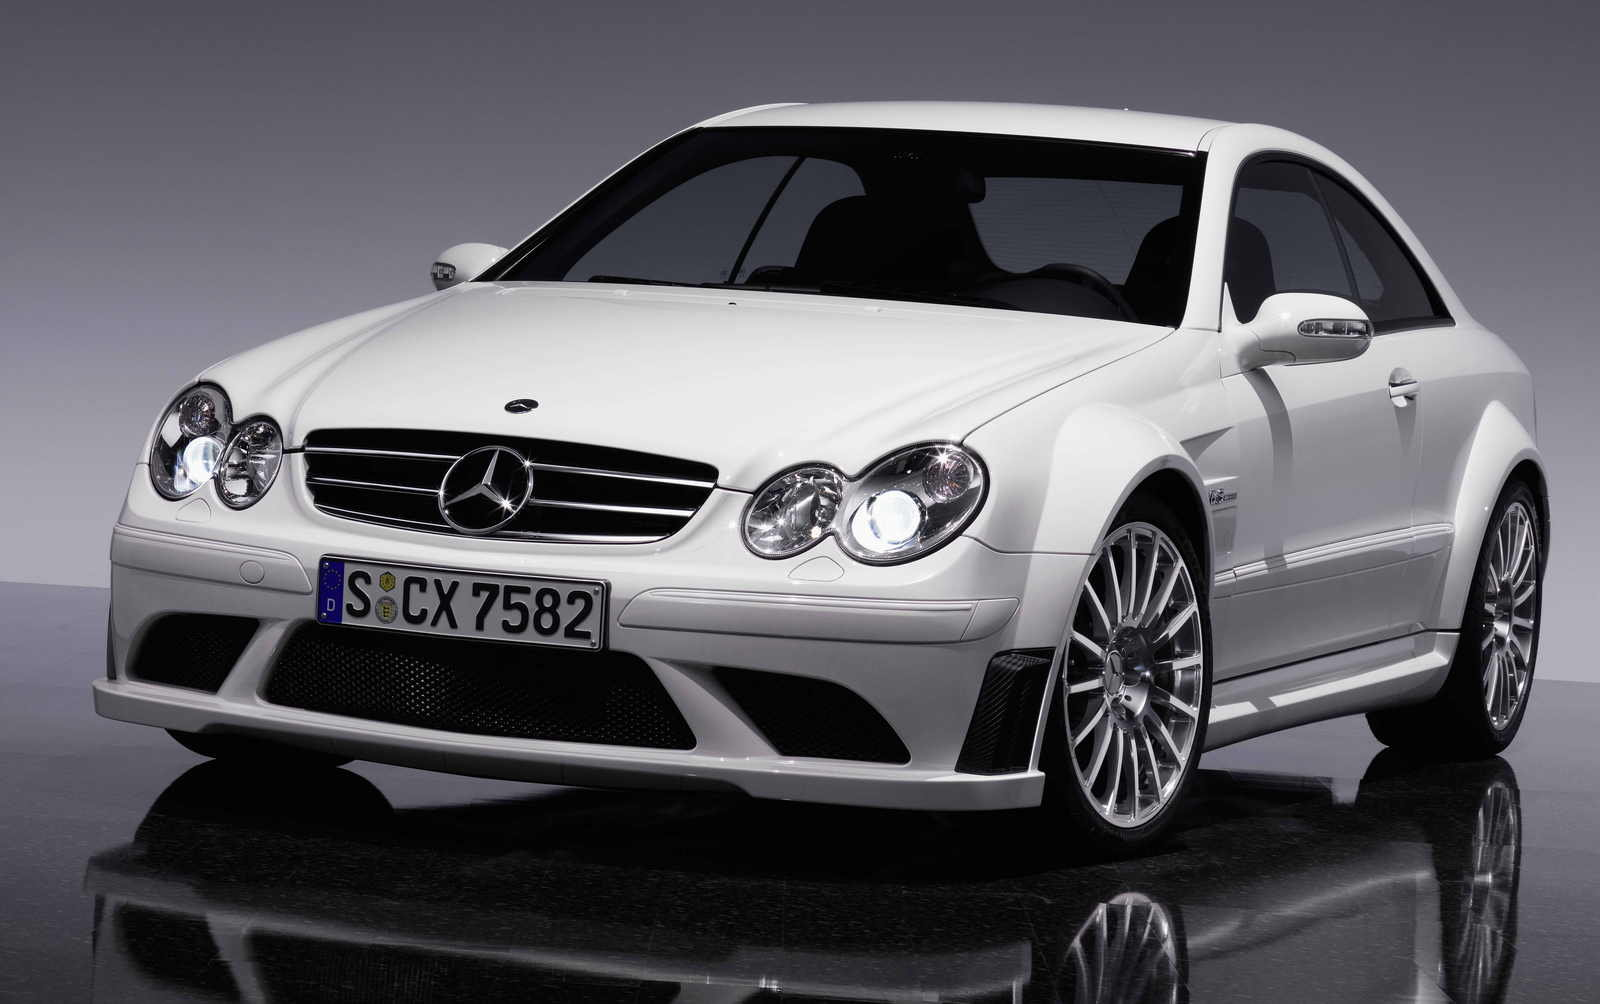 2007 mercedes clk 63 amg black series picture 159209. Black Bedroom Furniture Sets. Home Design Ideas